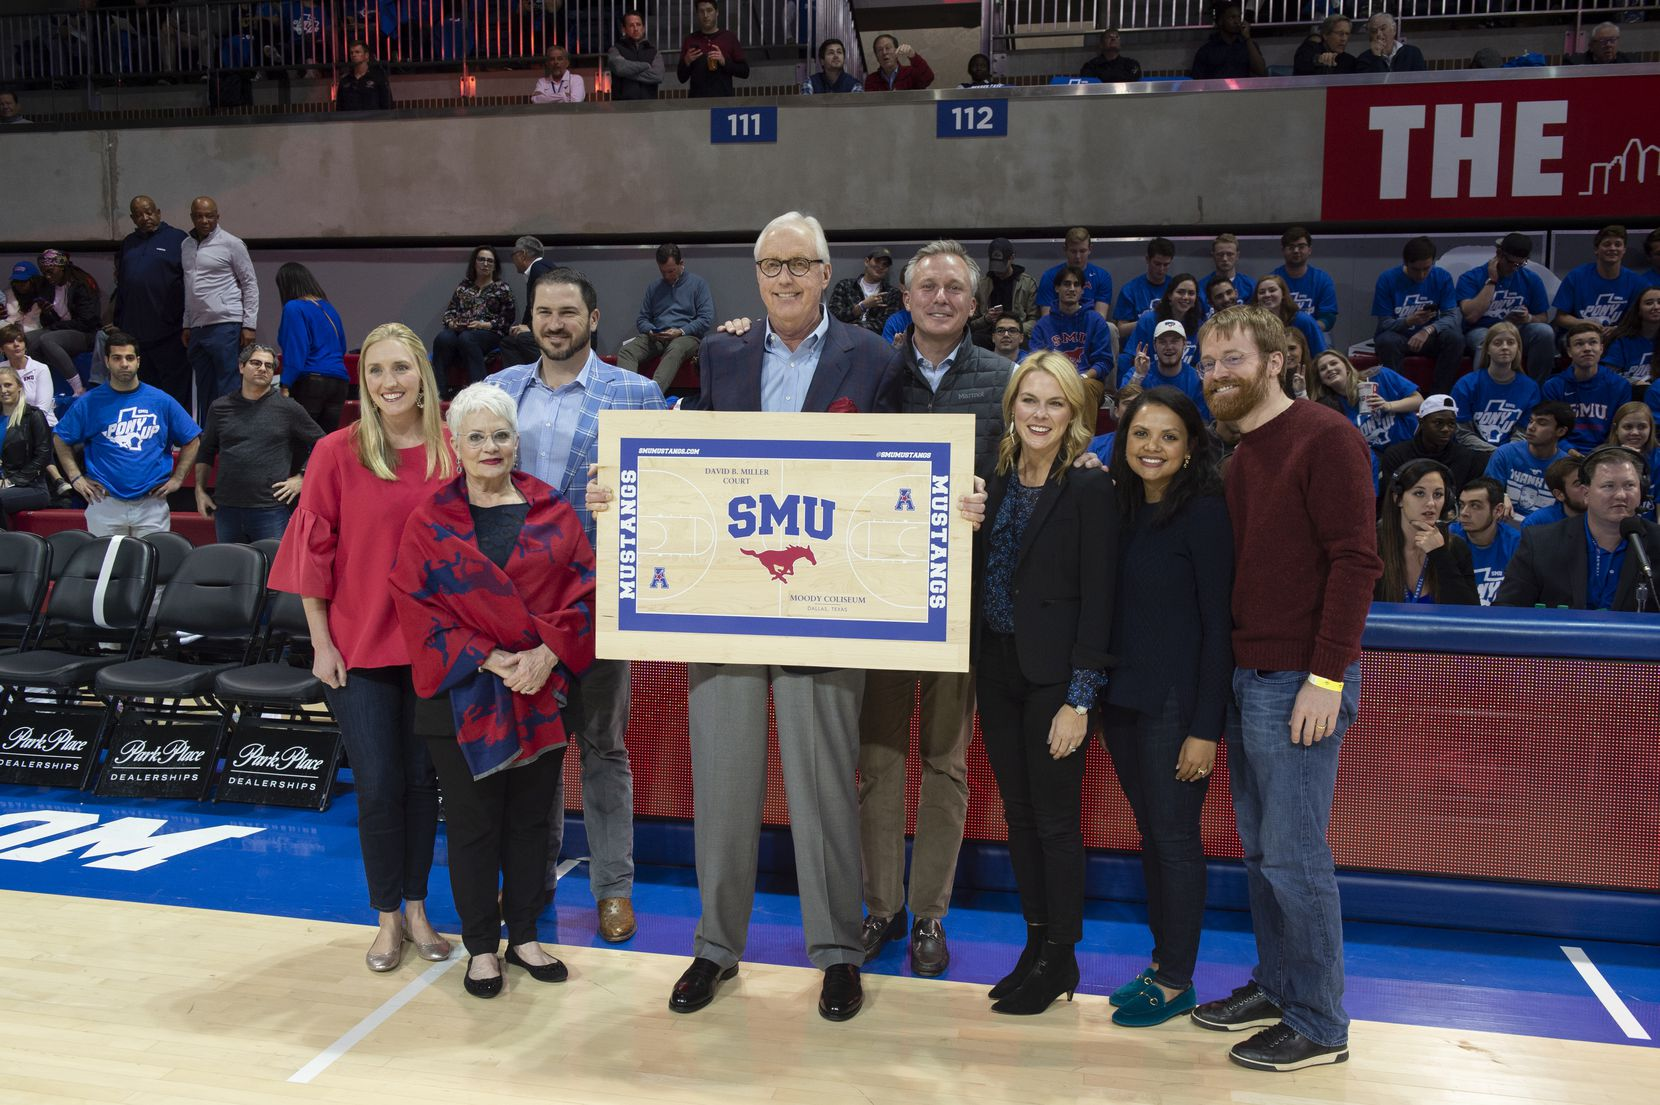 David Miller (center) held a piece of flooring as he stood with his family on Dec. 5, 2018, when the university announced that it was naming the basketball court in his honor.